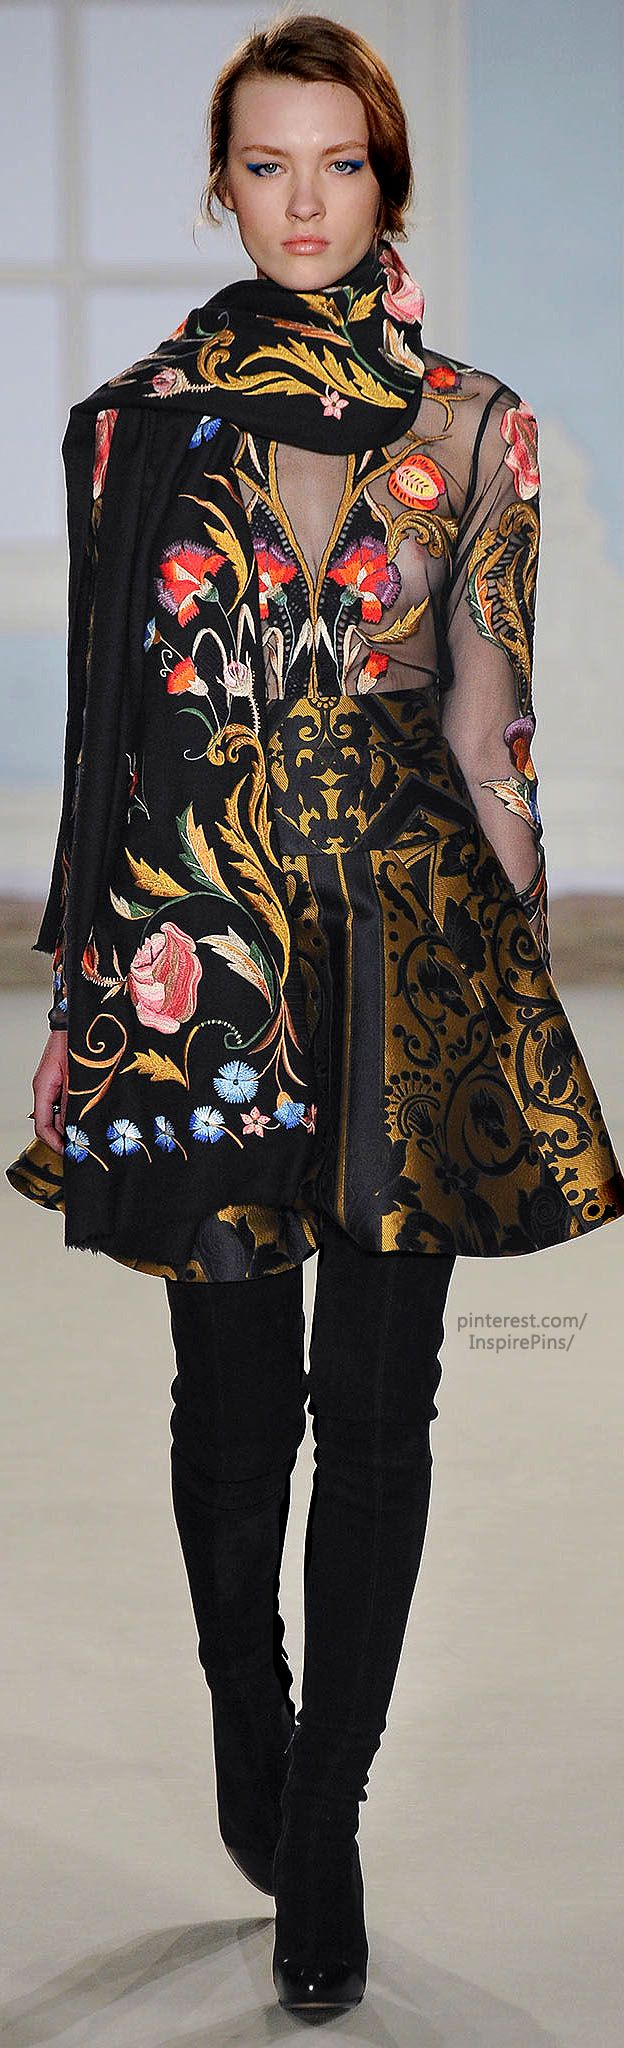 Fall 2014 Ready-to-Wear Temperley London / Temperley / https://www.pinterest.com/pin/138837600988082360/